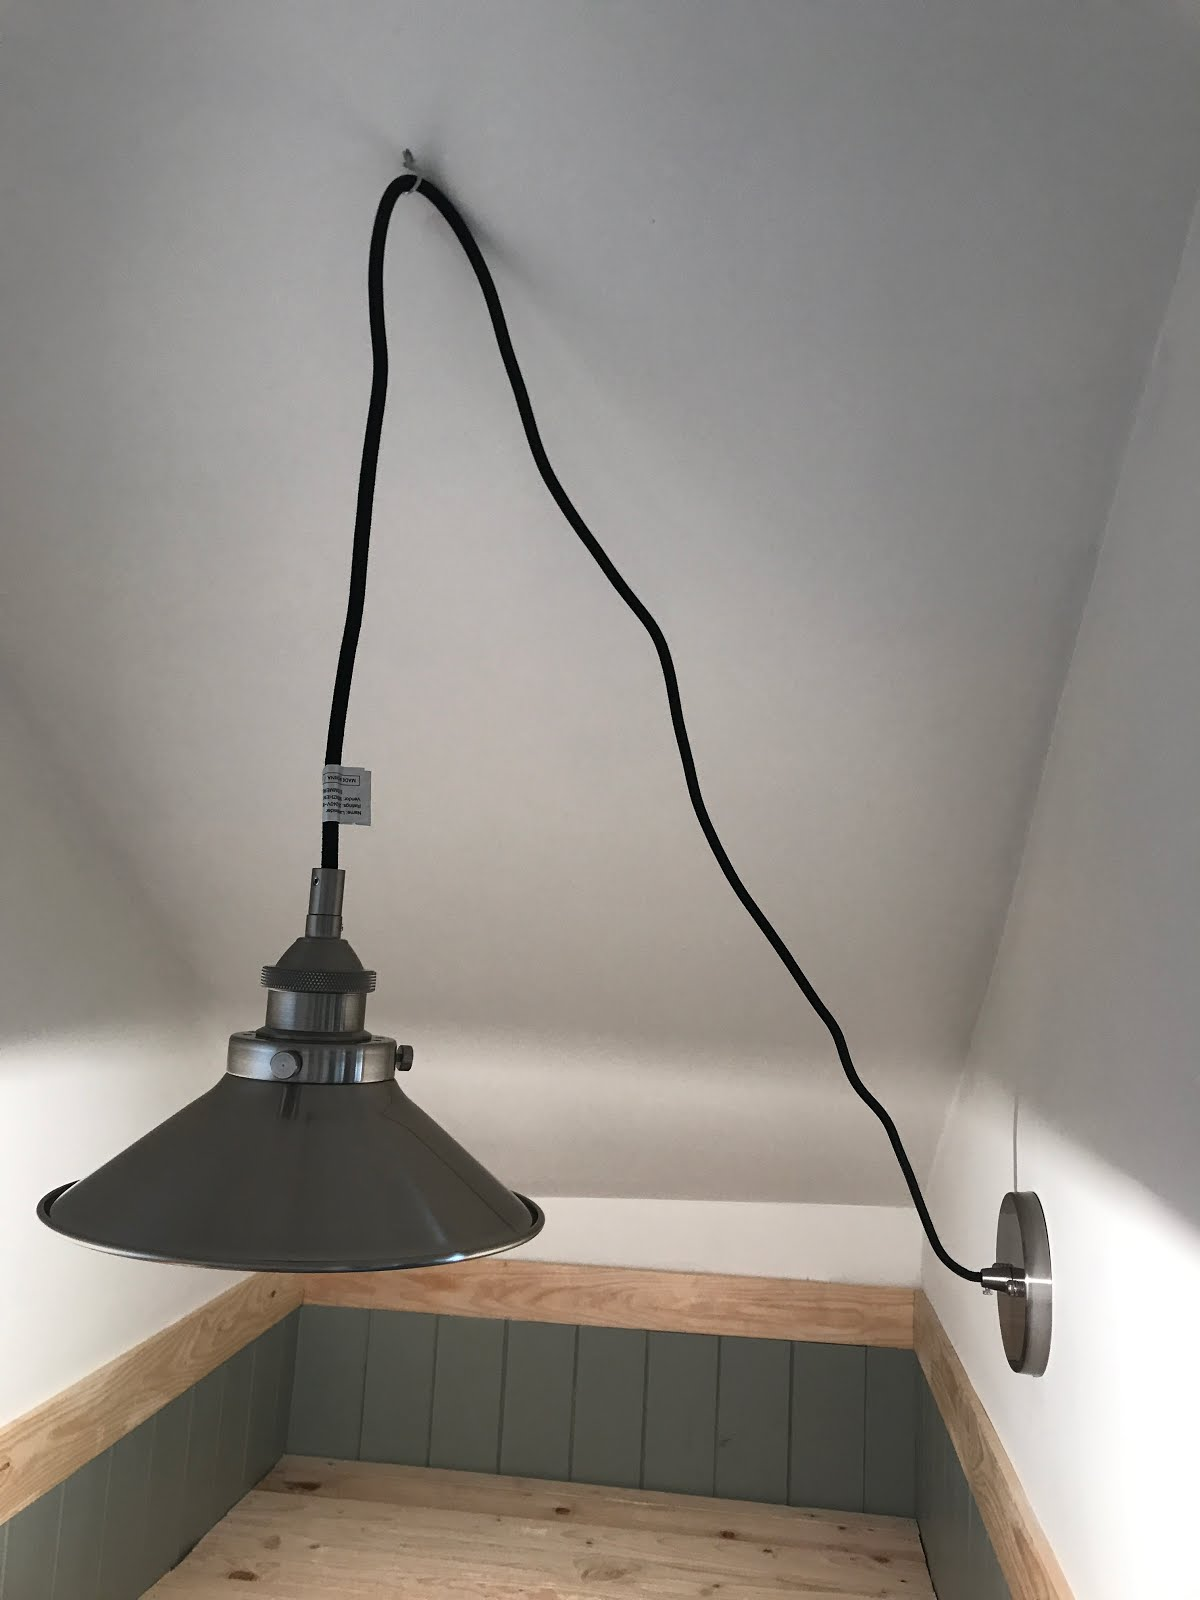 Turning a wall light into ceiling light